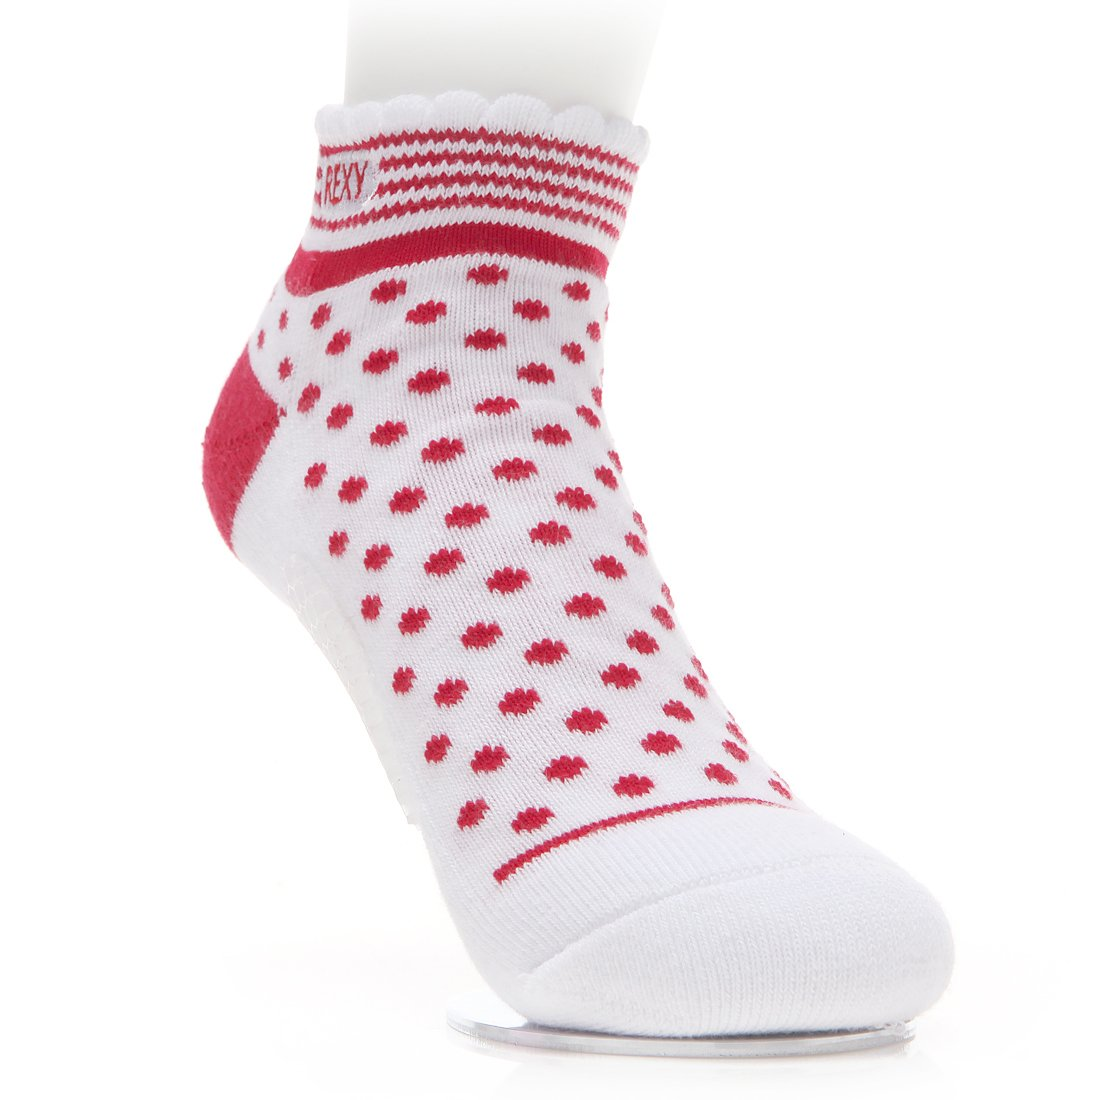 Rexy Functional Balance Women's Golf Ankle Socks Red Dot RGWT-09 by Rexy (Image #2)